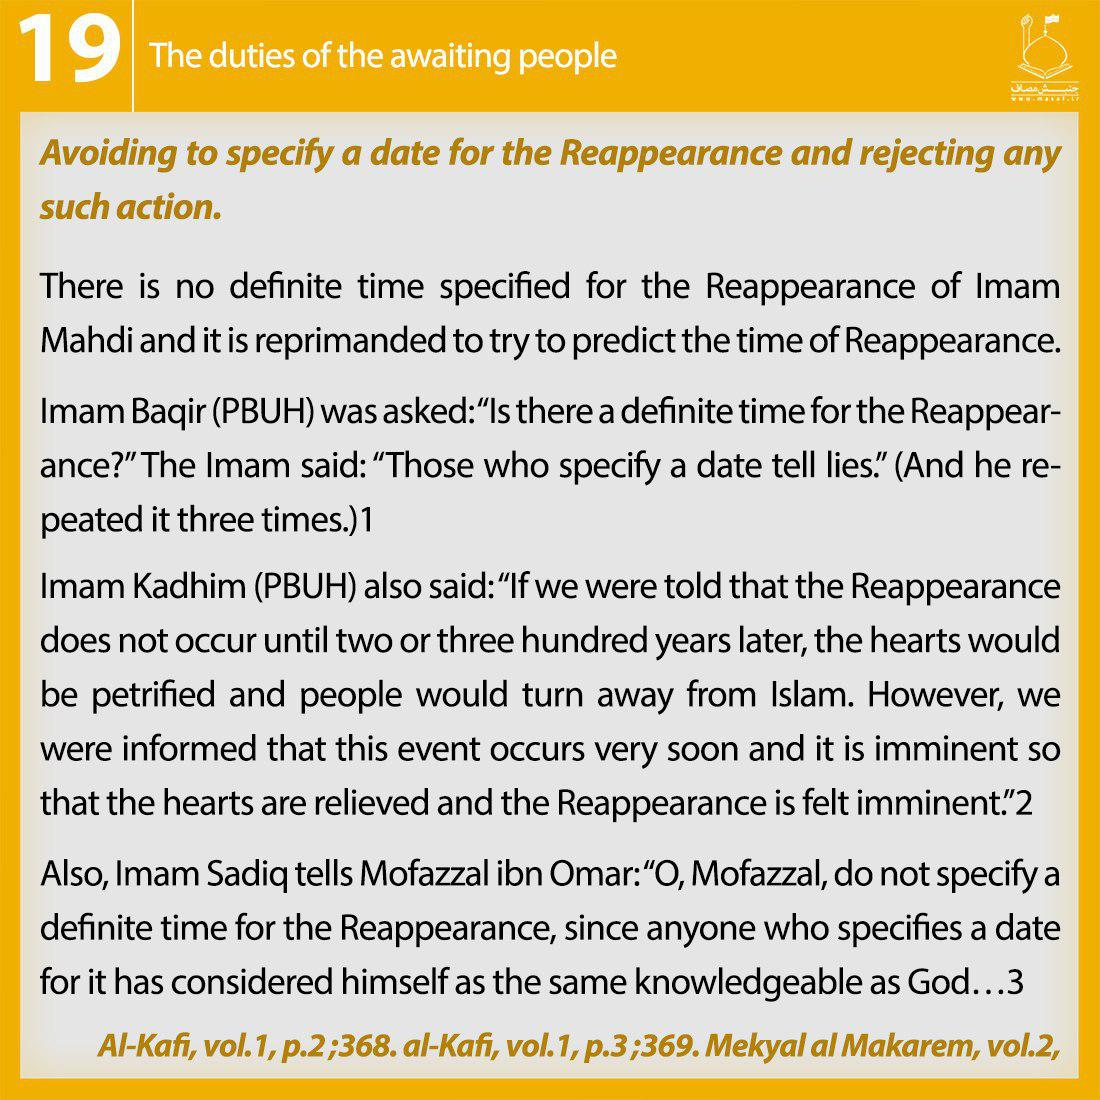 12th imam , 12th imam prophecy , imam mahdi  ,  who is 12th imam , hidden imam,12th imam birth,where is 12th imam,time of reappearance